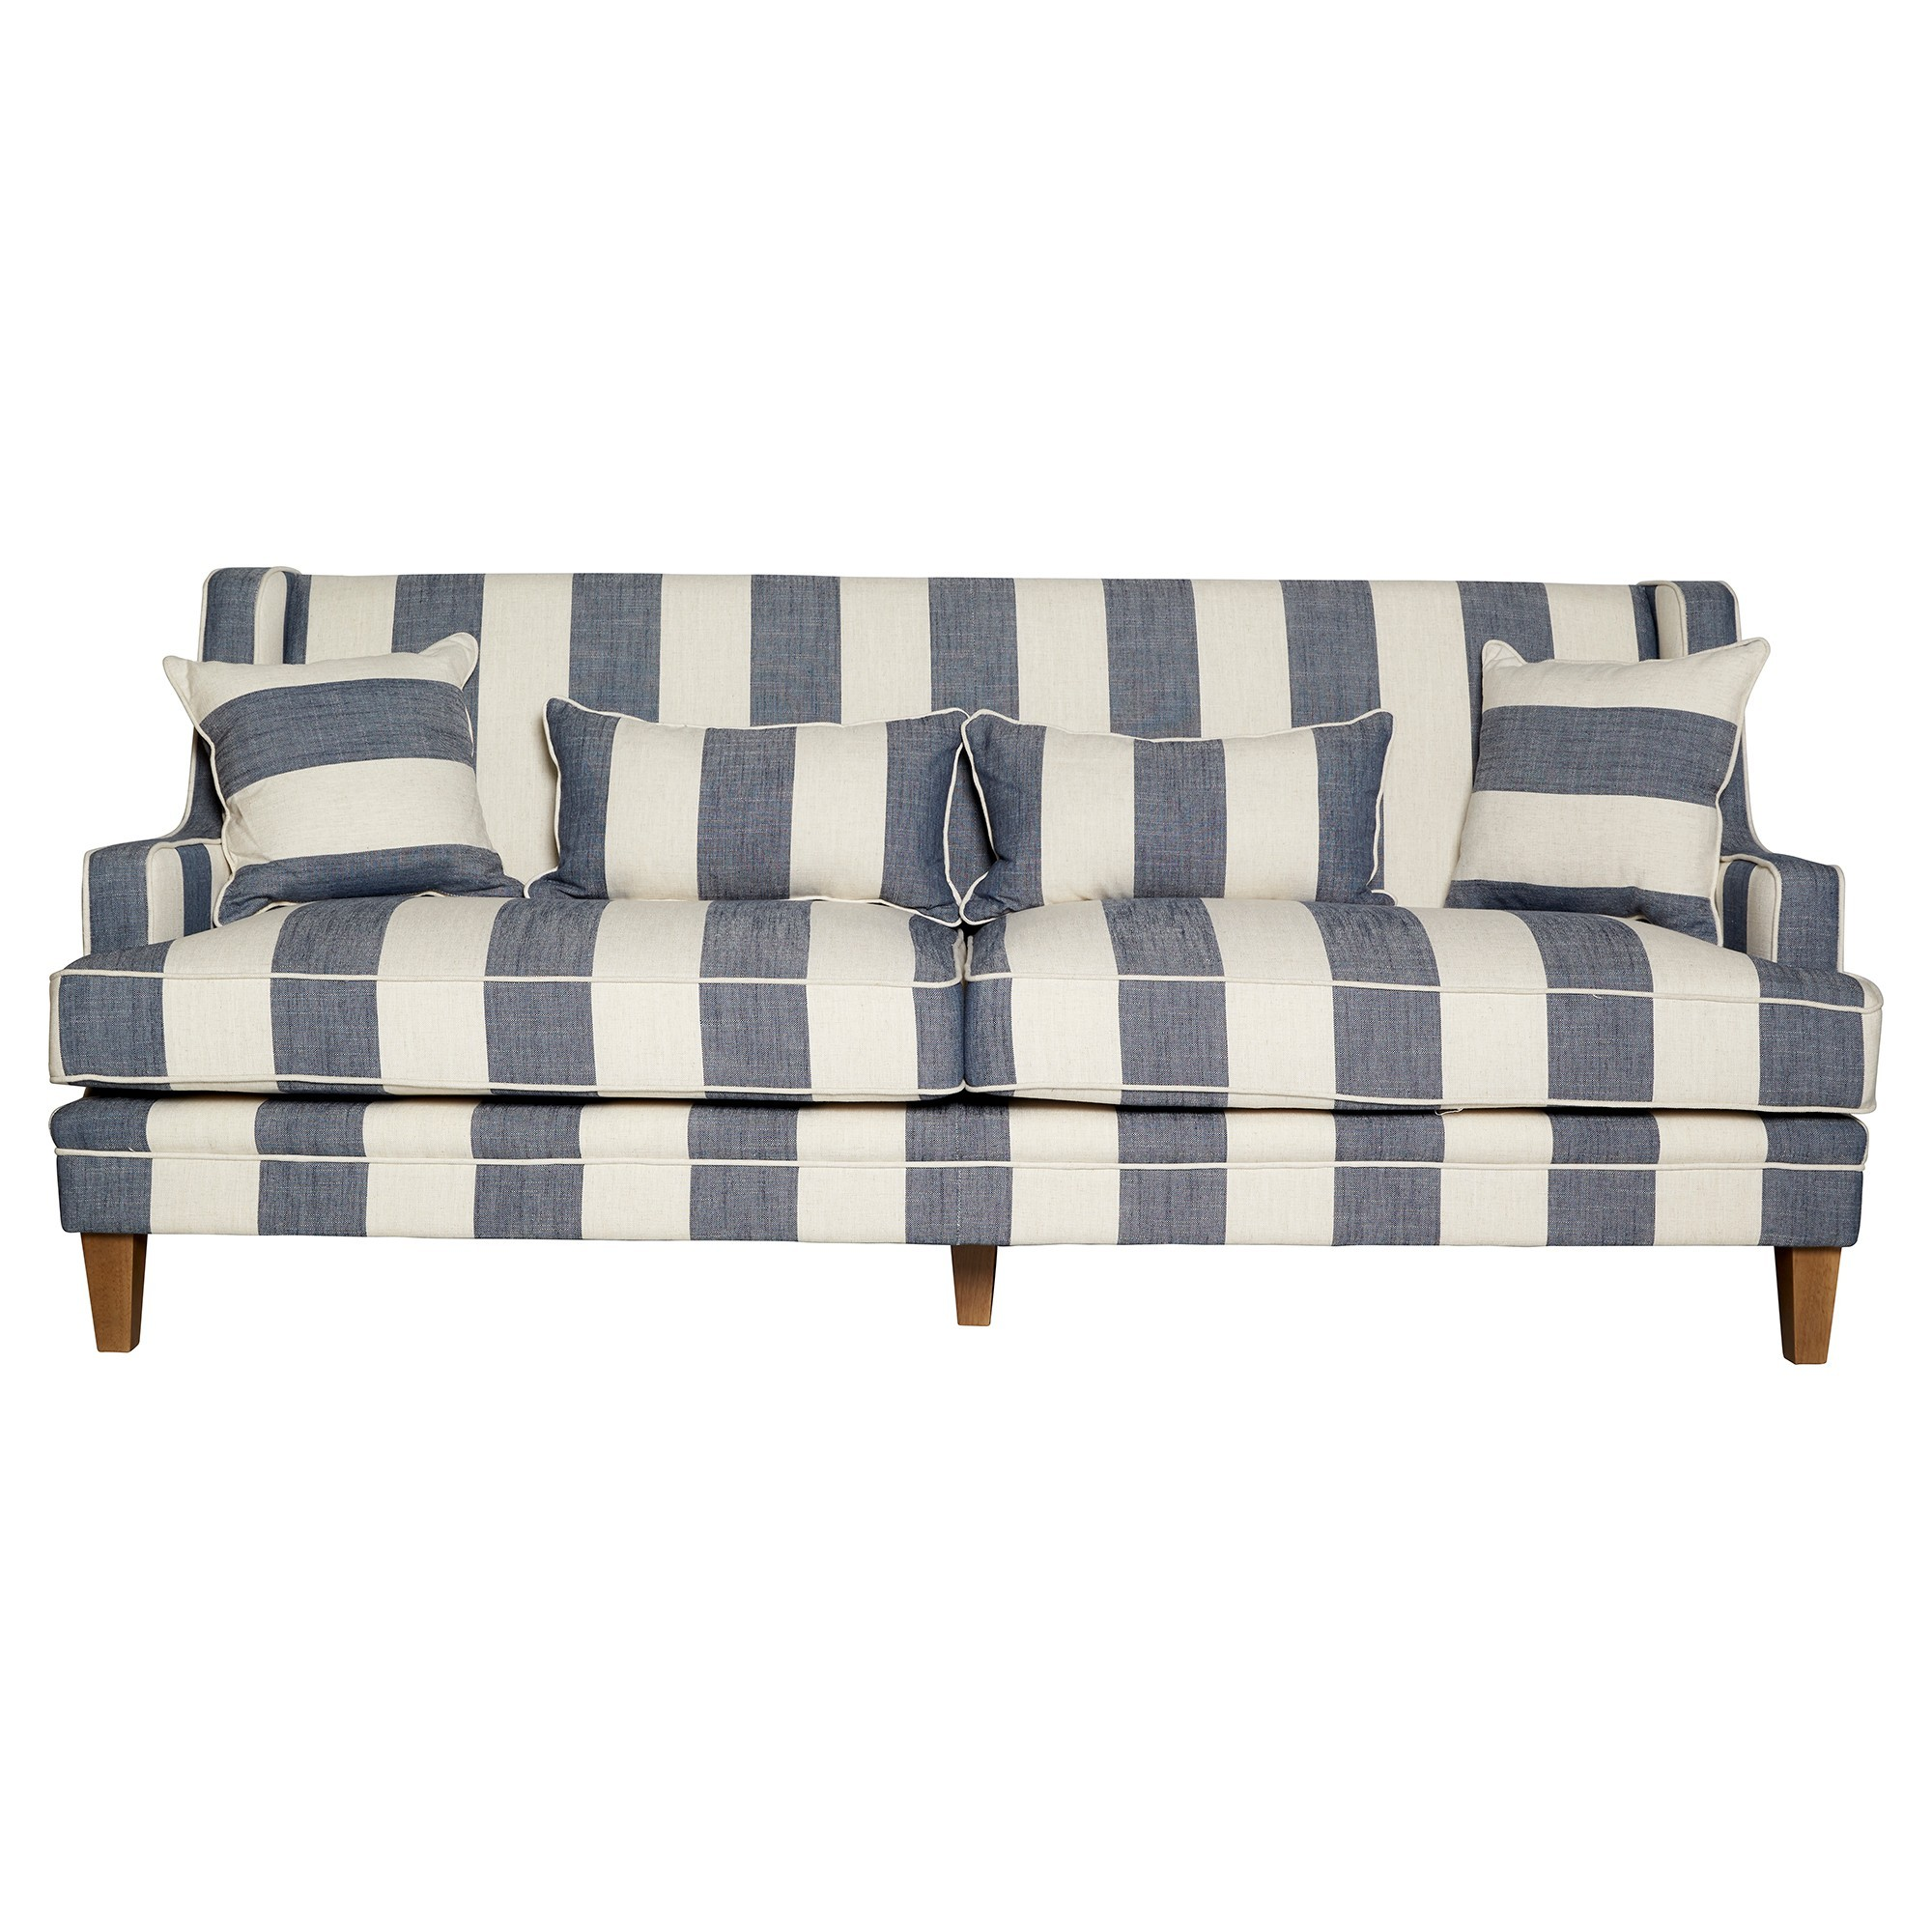 Kimberley Striped Fabric Sofa, 3 Seater, Denim / Cream